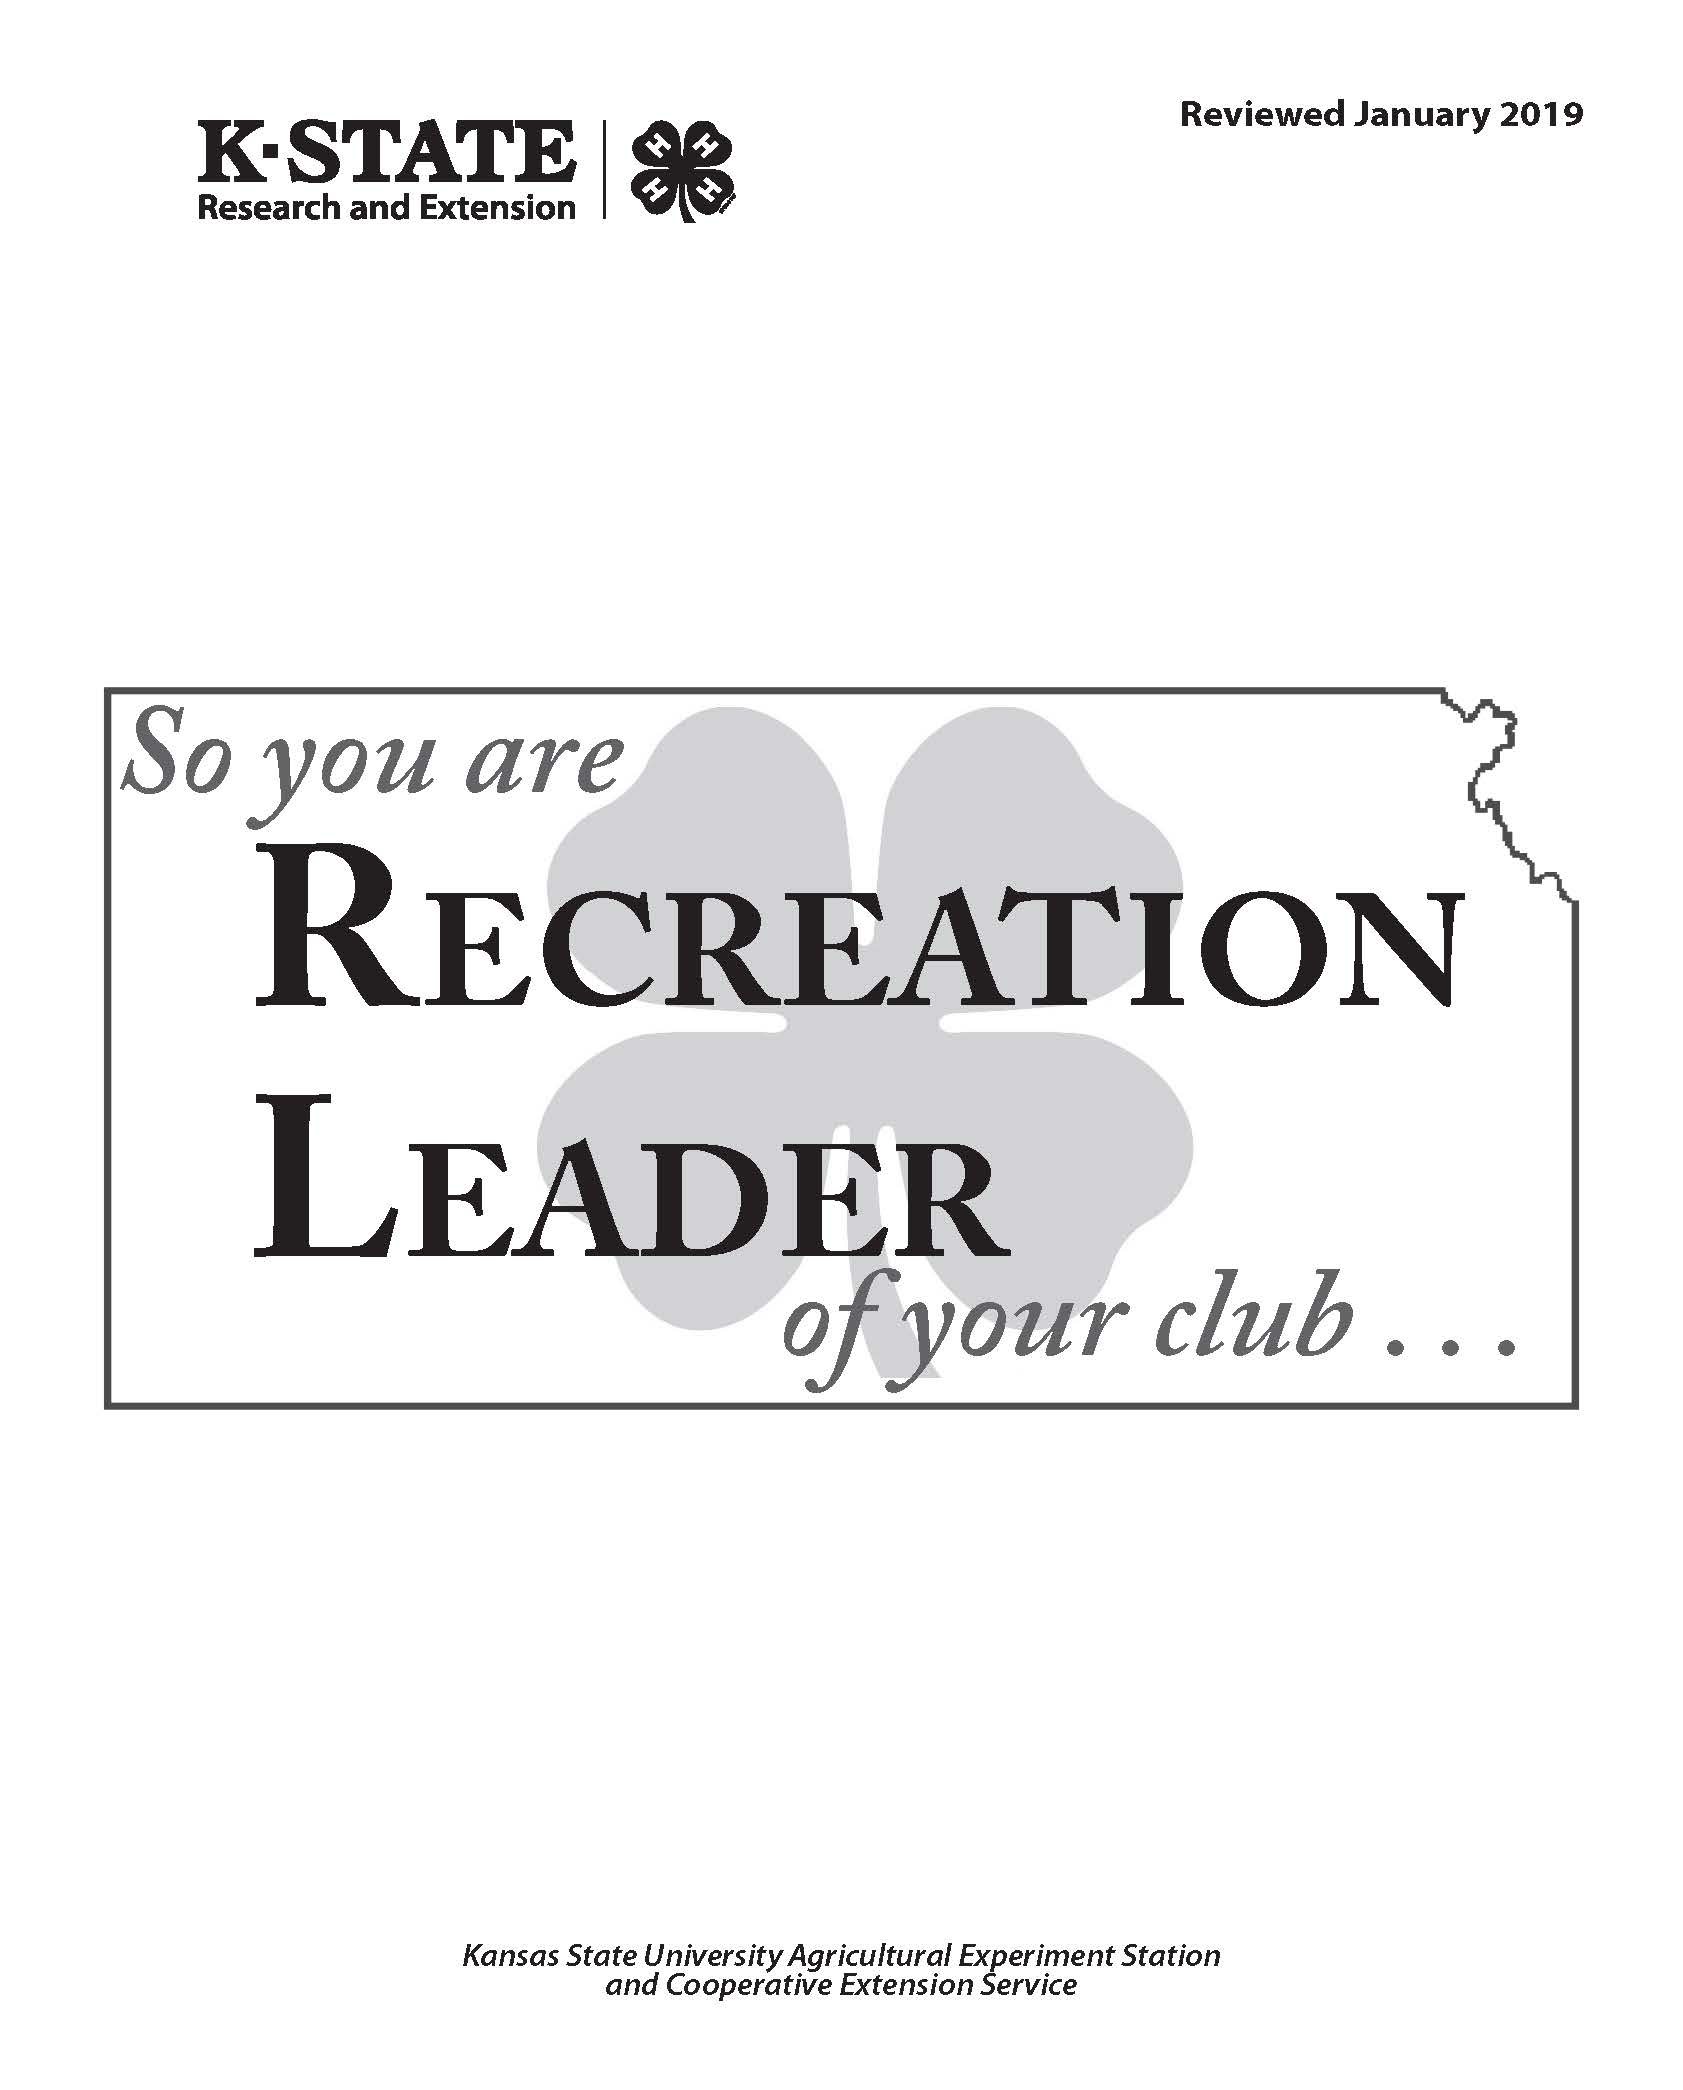 So you are the Recreation Leader of your club